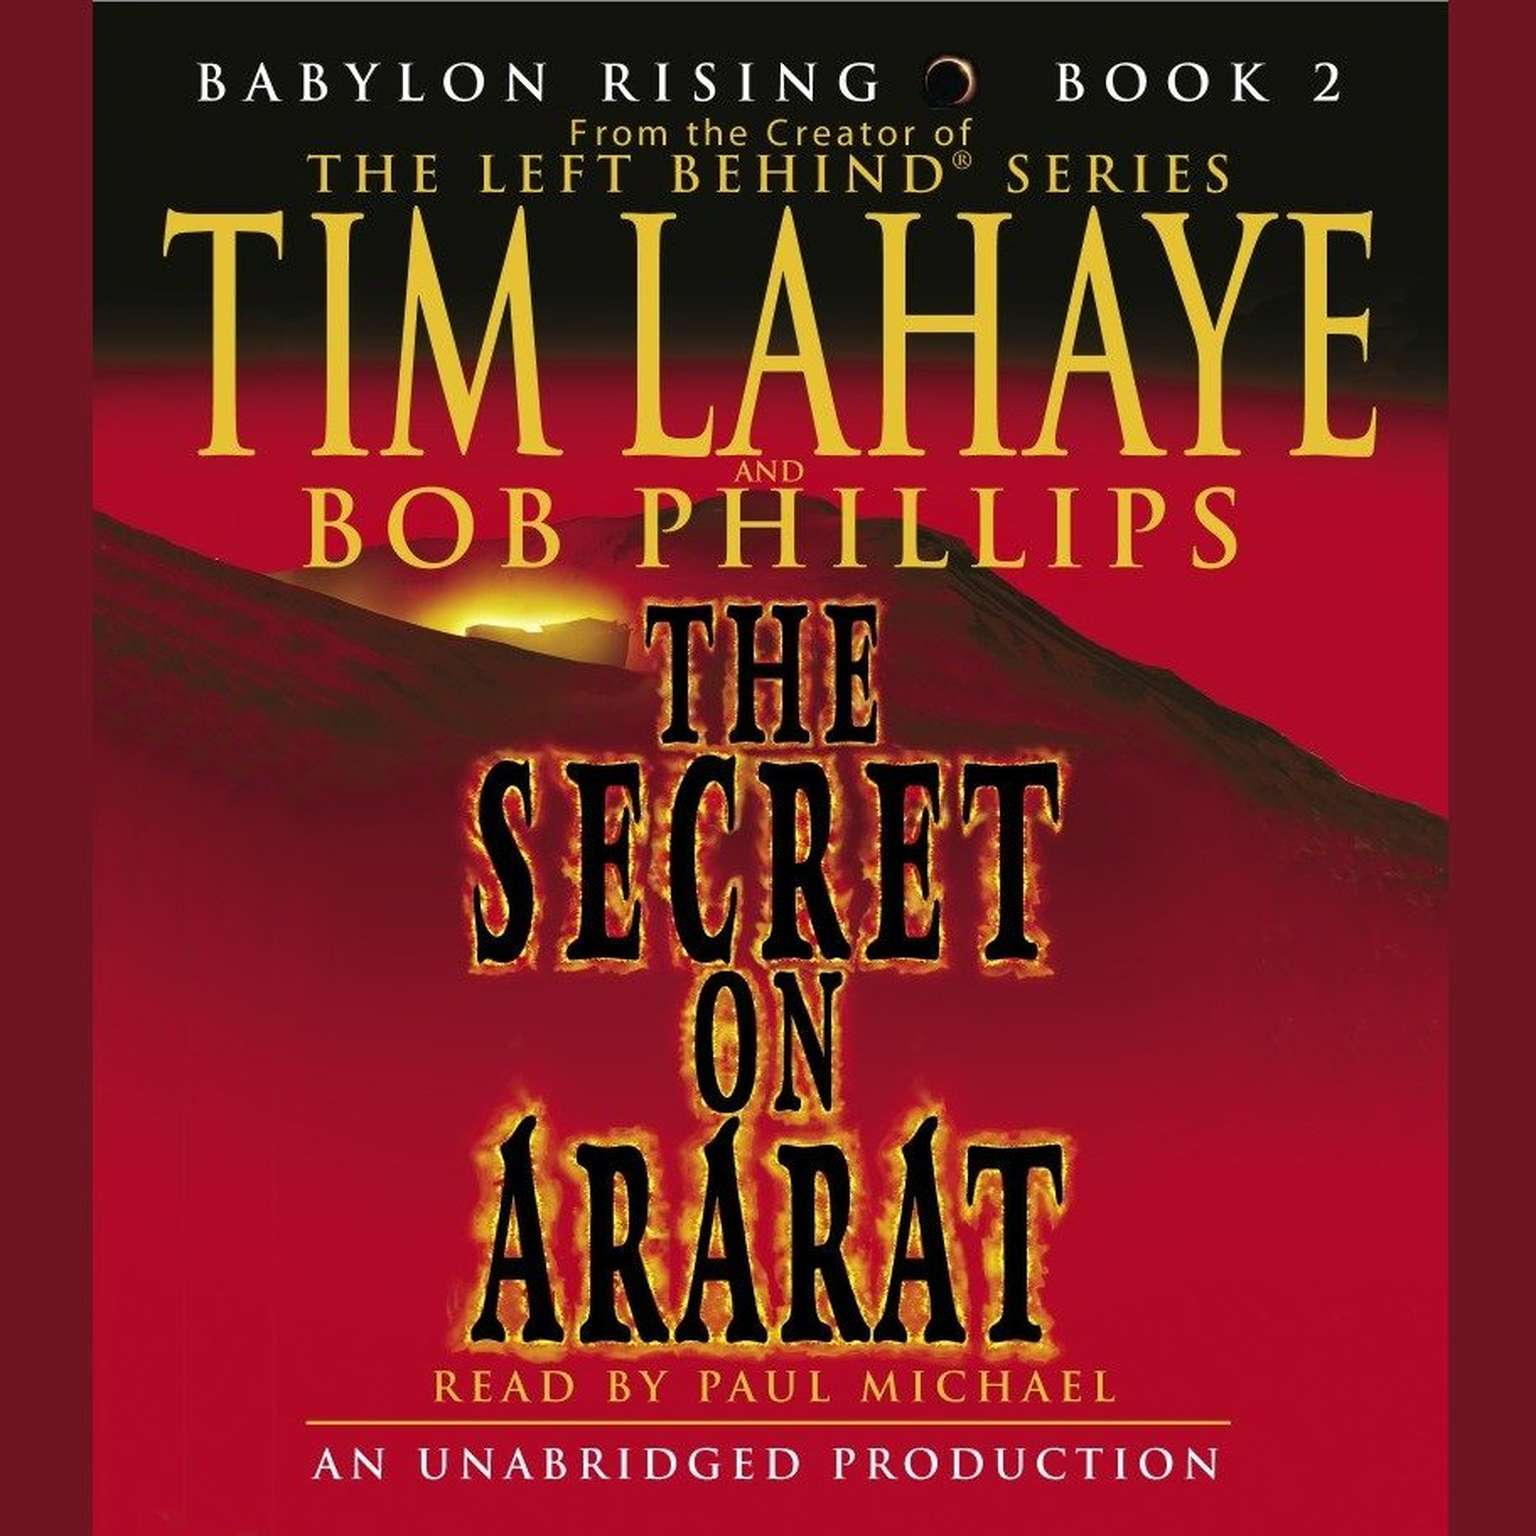 Printable Babylon Rising: The Secret on Ararat Audiobook Cover Art